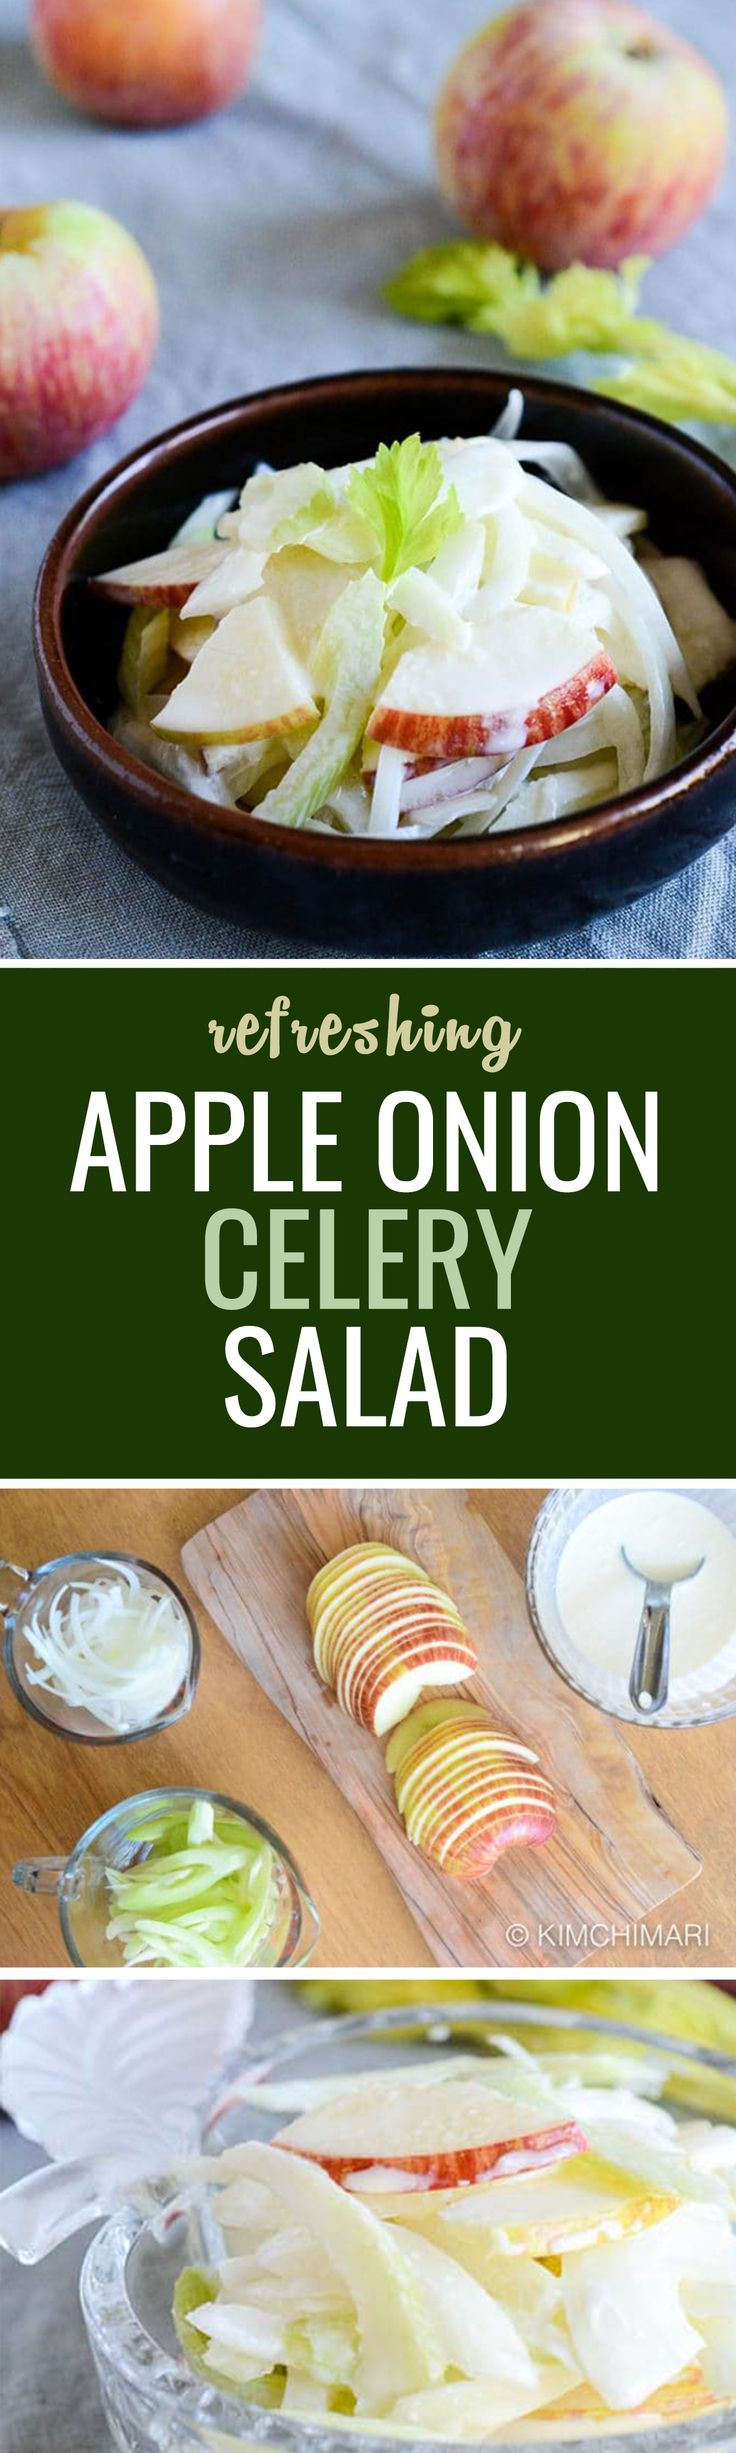 This Apple Onion Celery salad is creamy, slightly sweet, tangy and oniony which goes really well with any Korean meal as banchan and especially well with Korean BBQ meats.